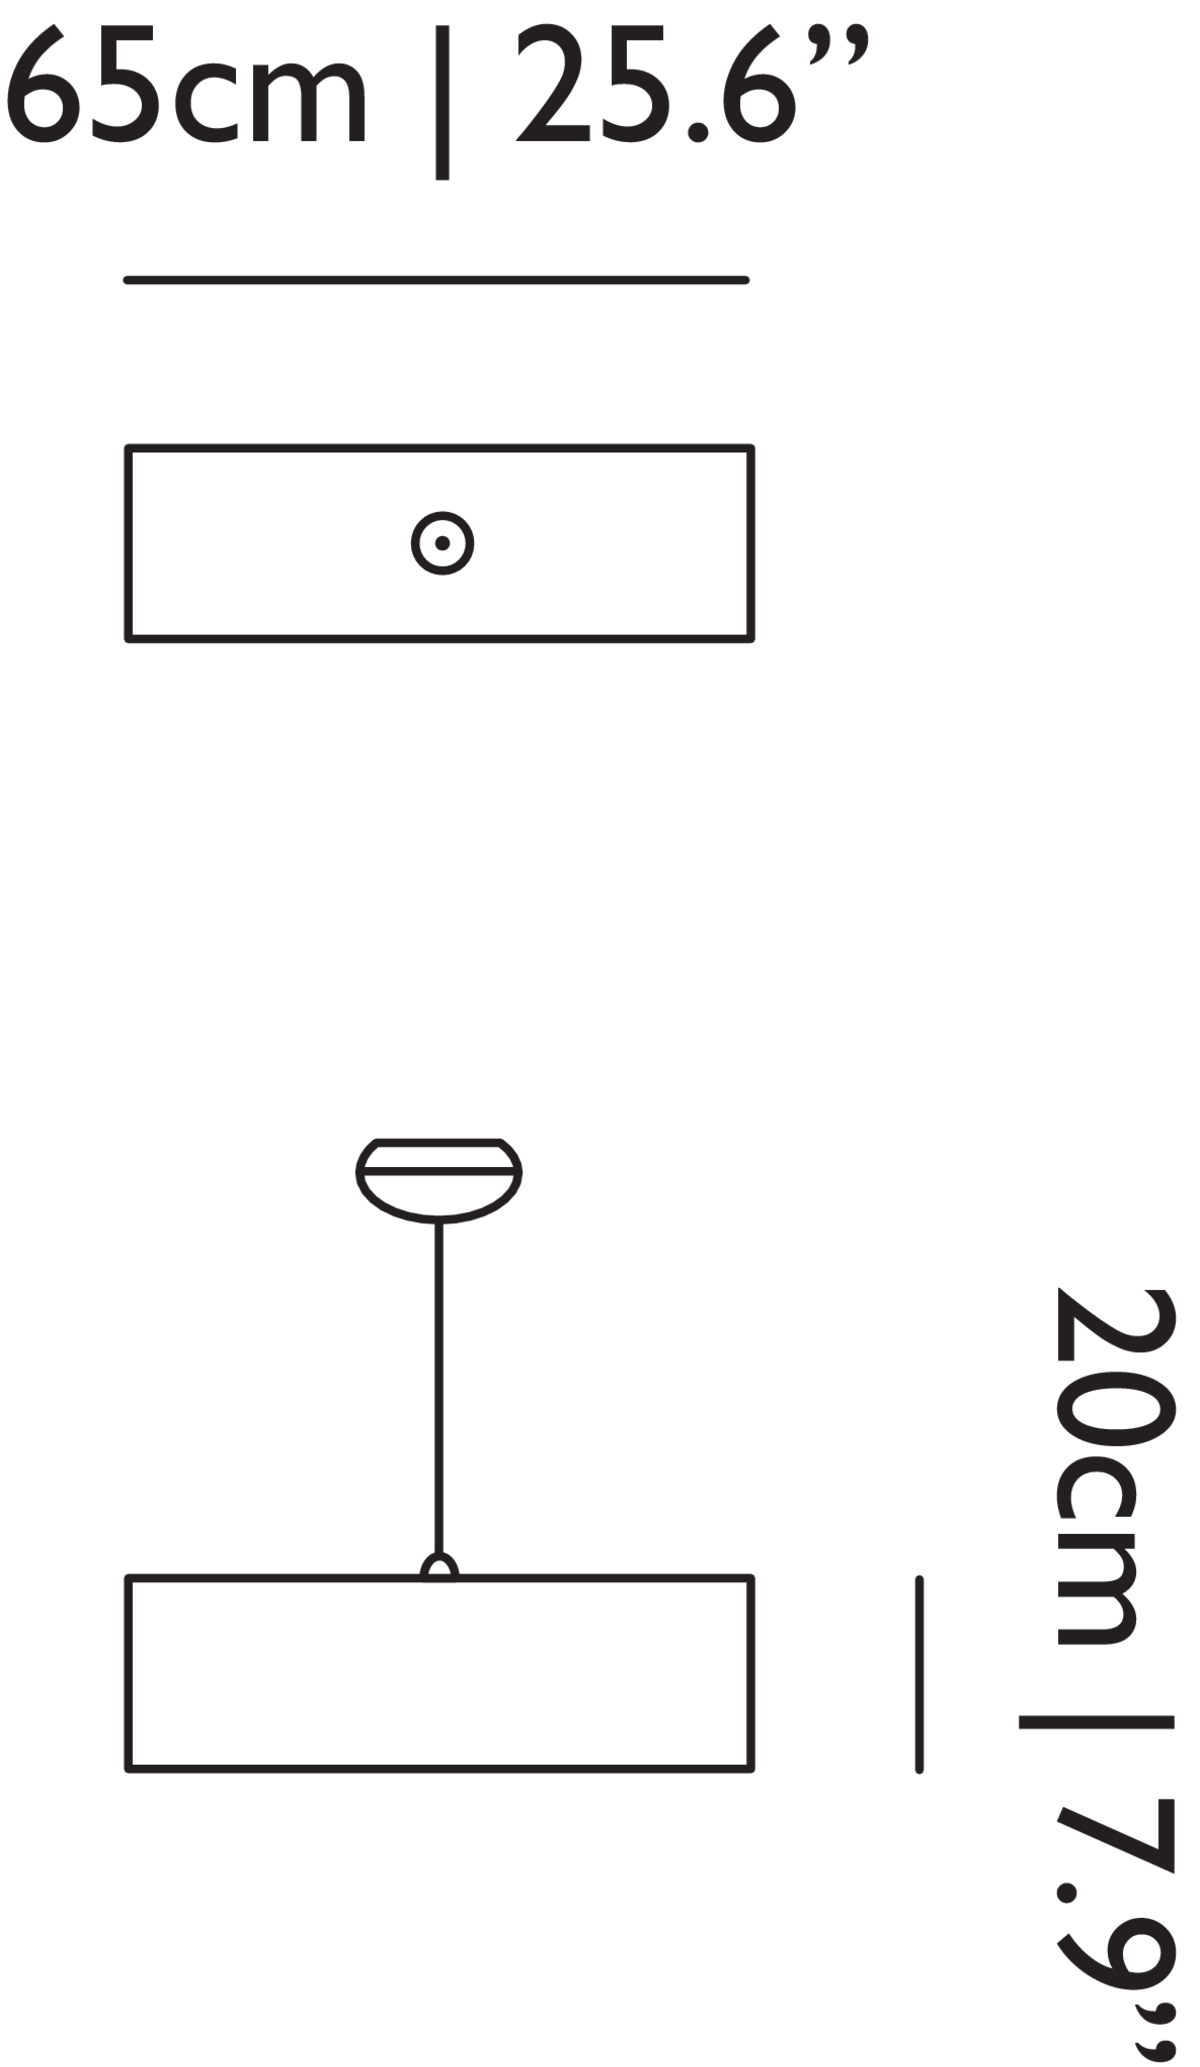 Tube suspension light linedrawing with dimensions